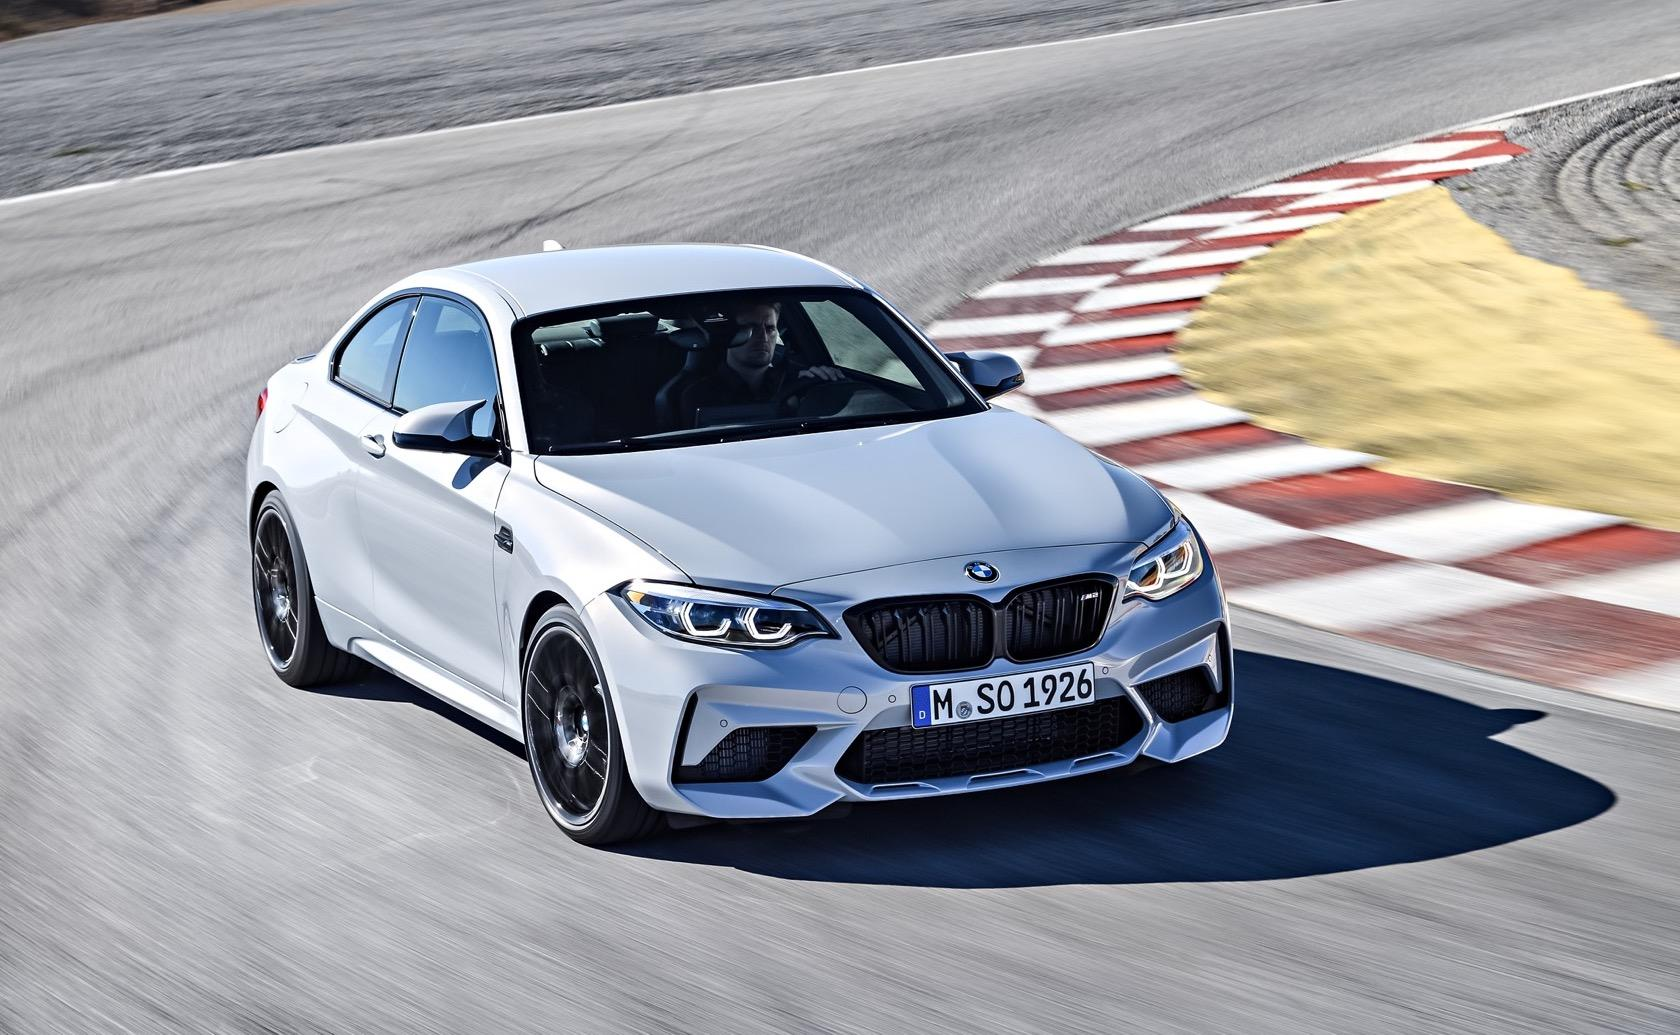 2019 Bmw M2 Competition Sees Track Car Star Get 405hp